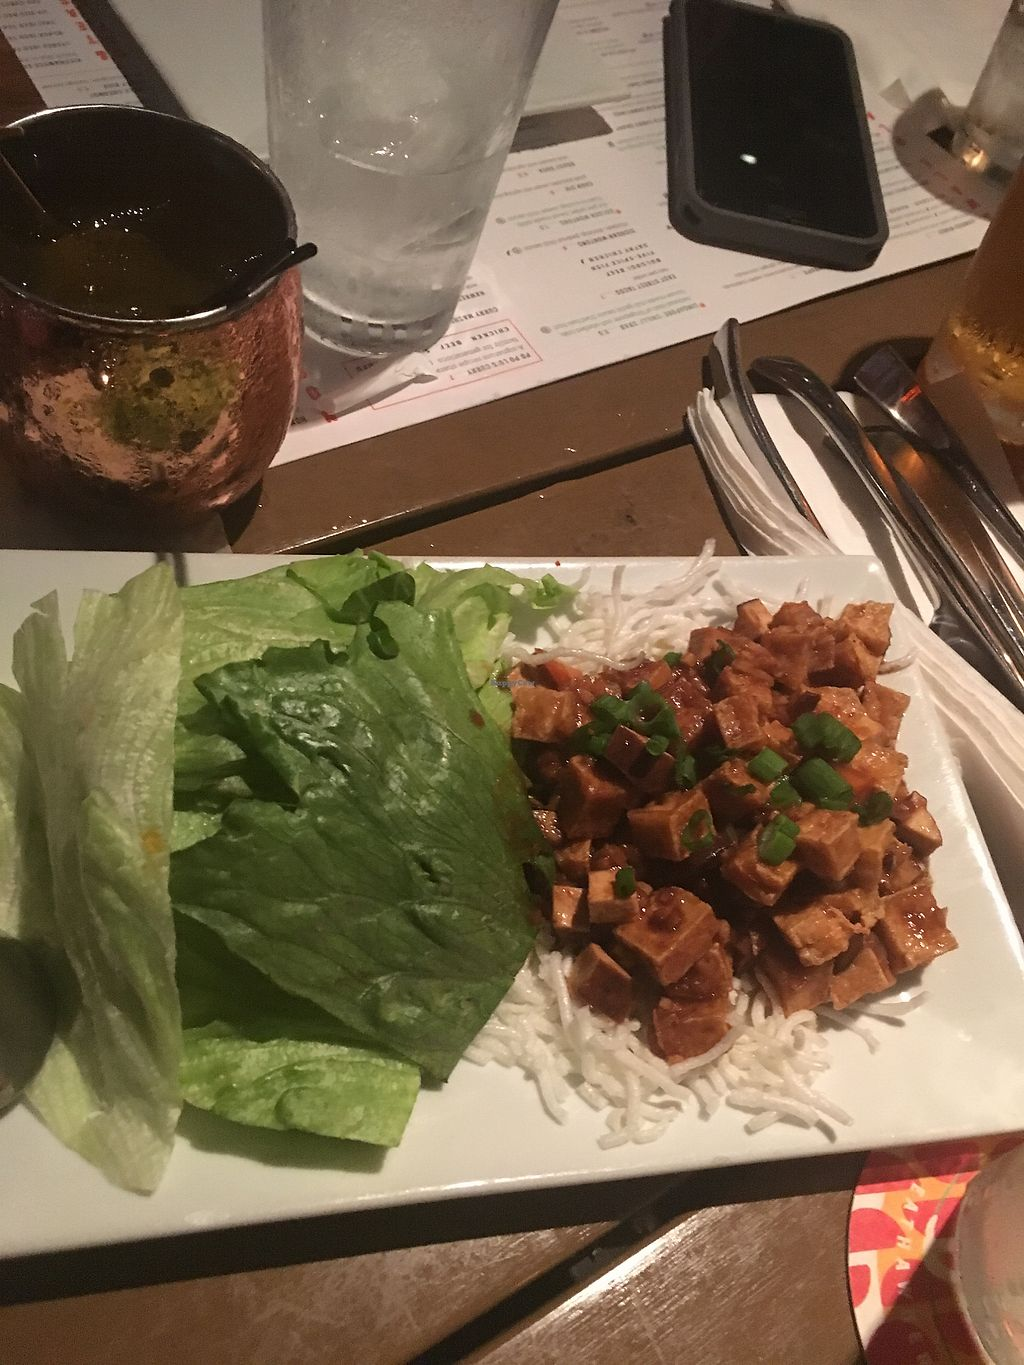 "Photo of Hawkers Asian Street Fare  by <a href=""/members/profile/nicolealcalde"">nicolealcalde</a> <br/>Tofu lettuce wraps <br/> December 3, 2017  - <a href='/contact/abuse/image/75448/331961'>Report</a>"